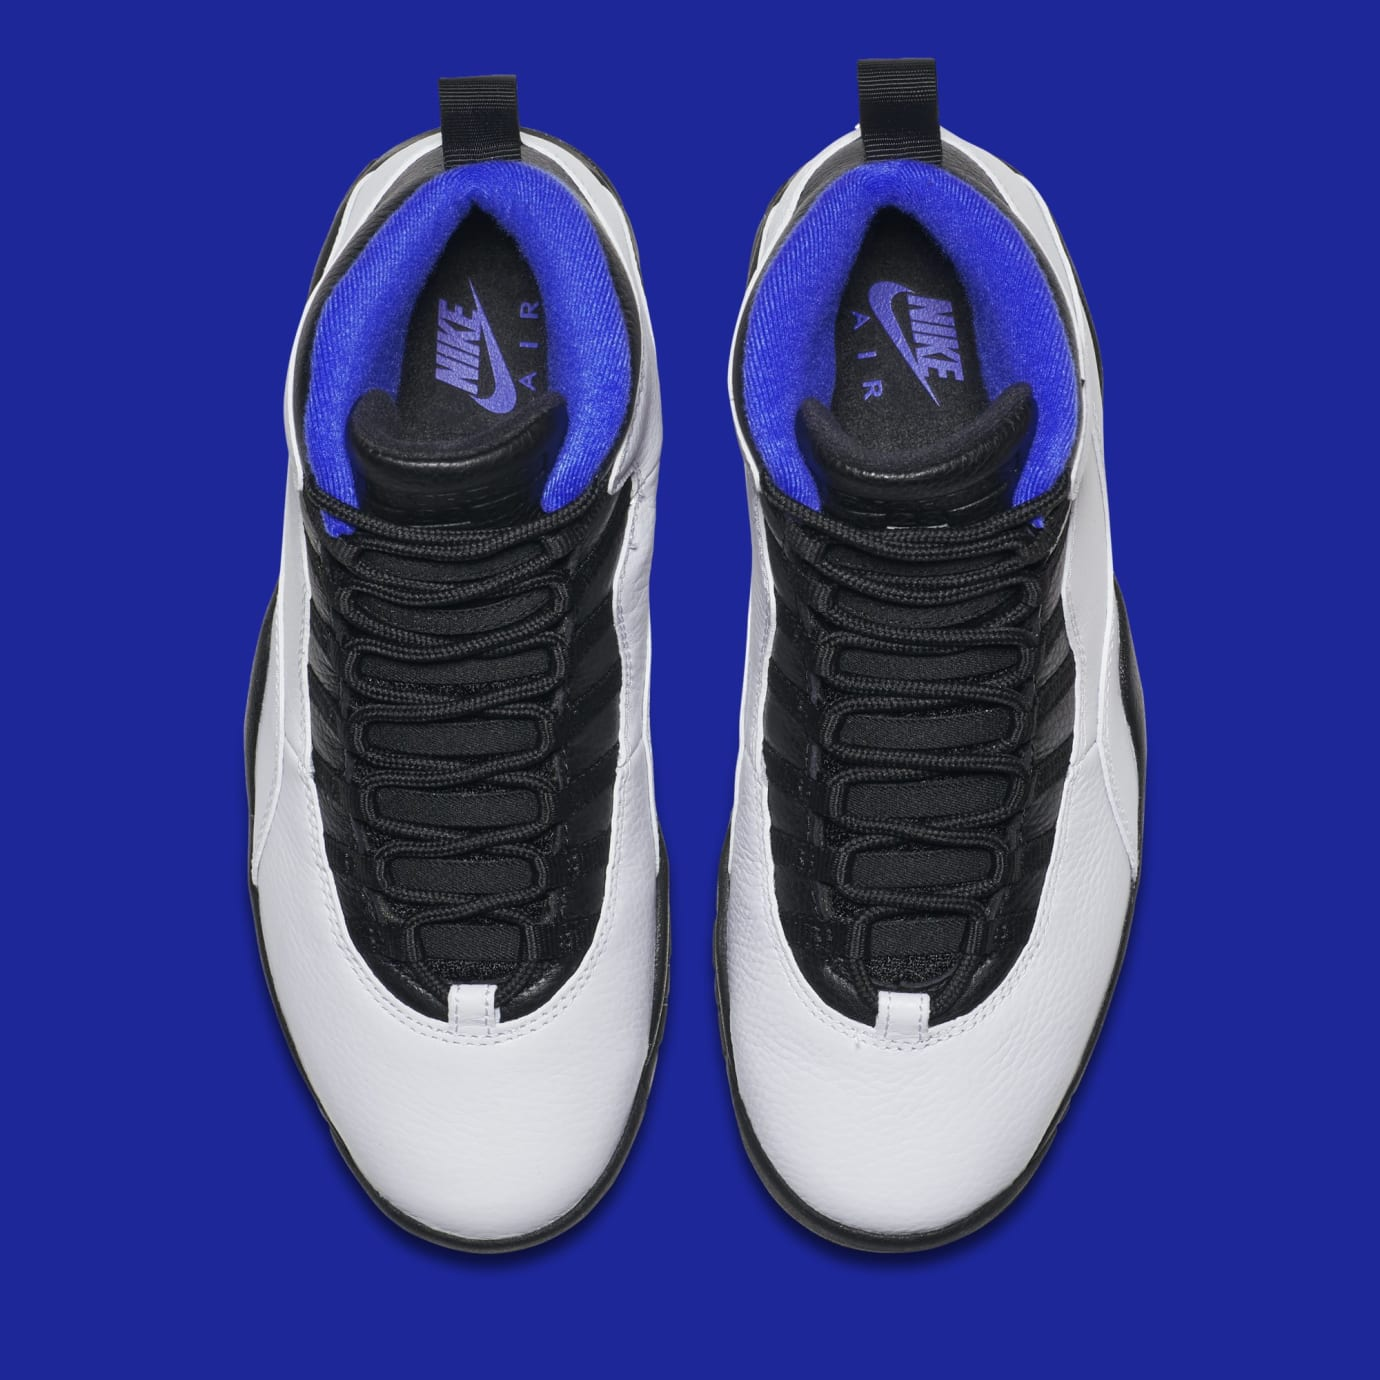 c88f404c0a2 Air Jordan 10 X Orlando 2018 Release Date 310805-108 | Sole Collector